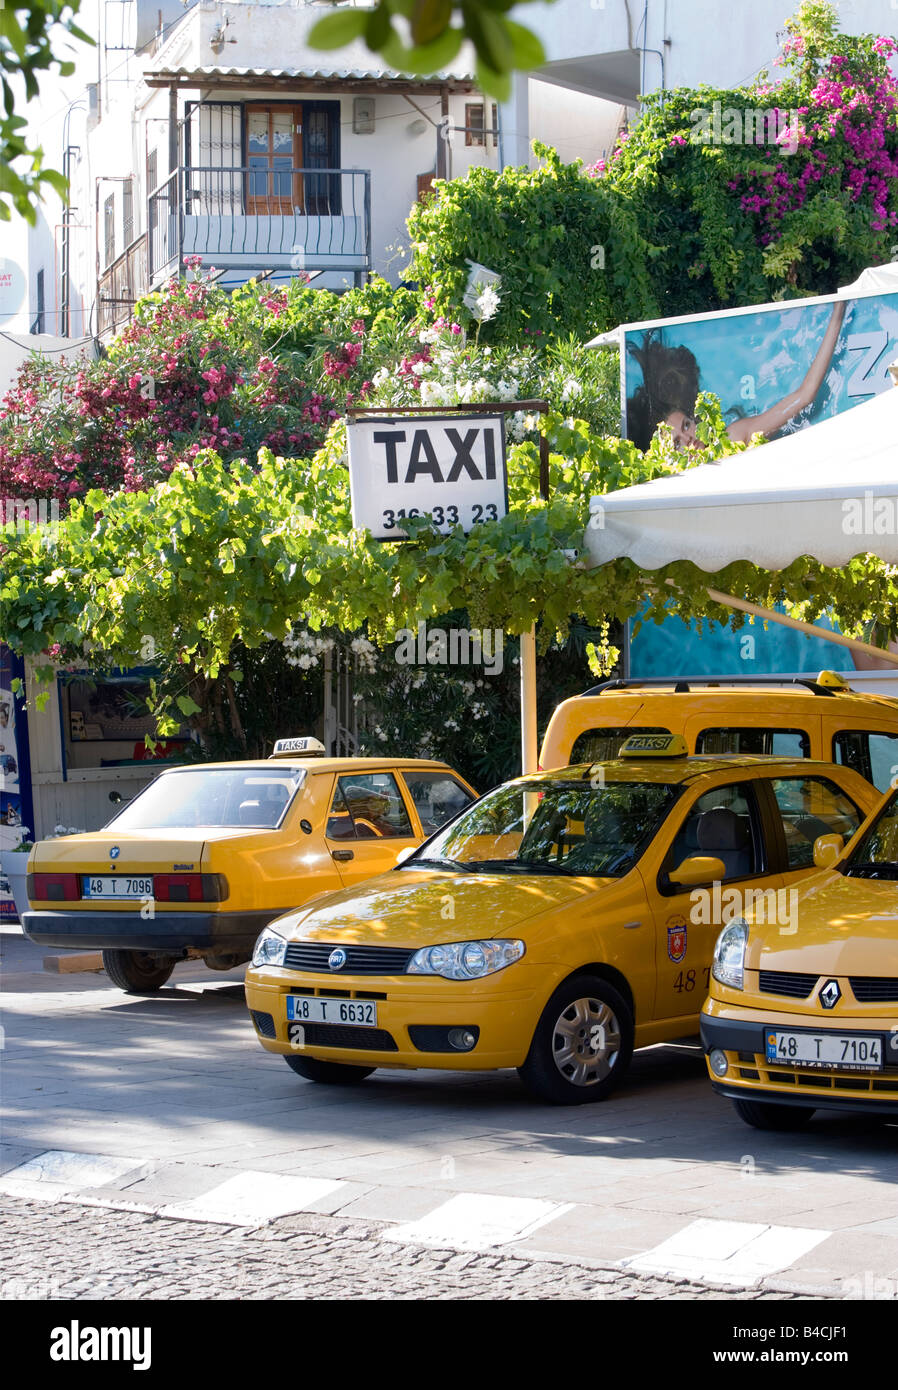 Lots Of Taxis Stock Photos & Lots Of Taxis Stock Images - Alamy